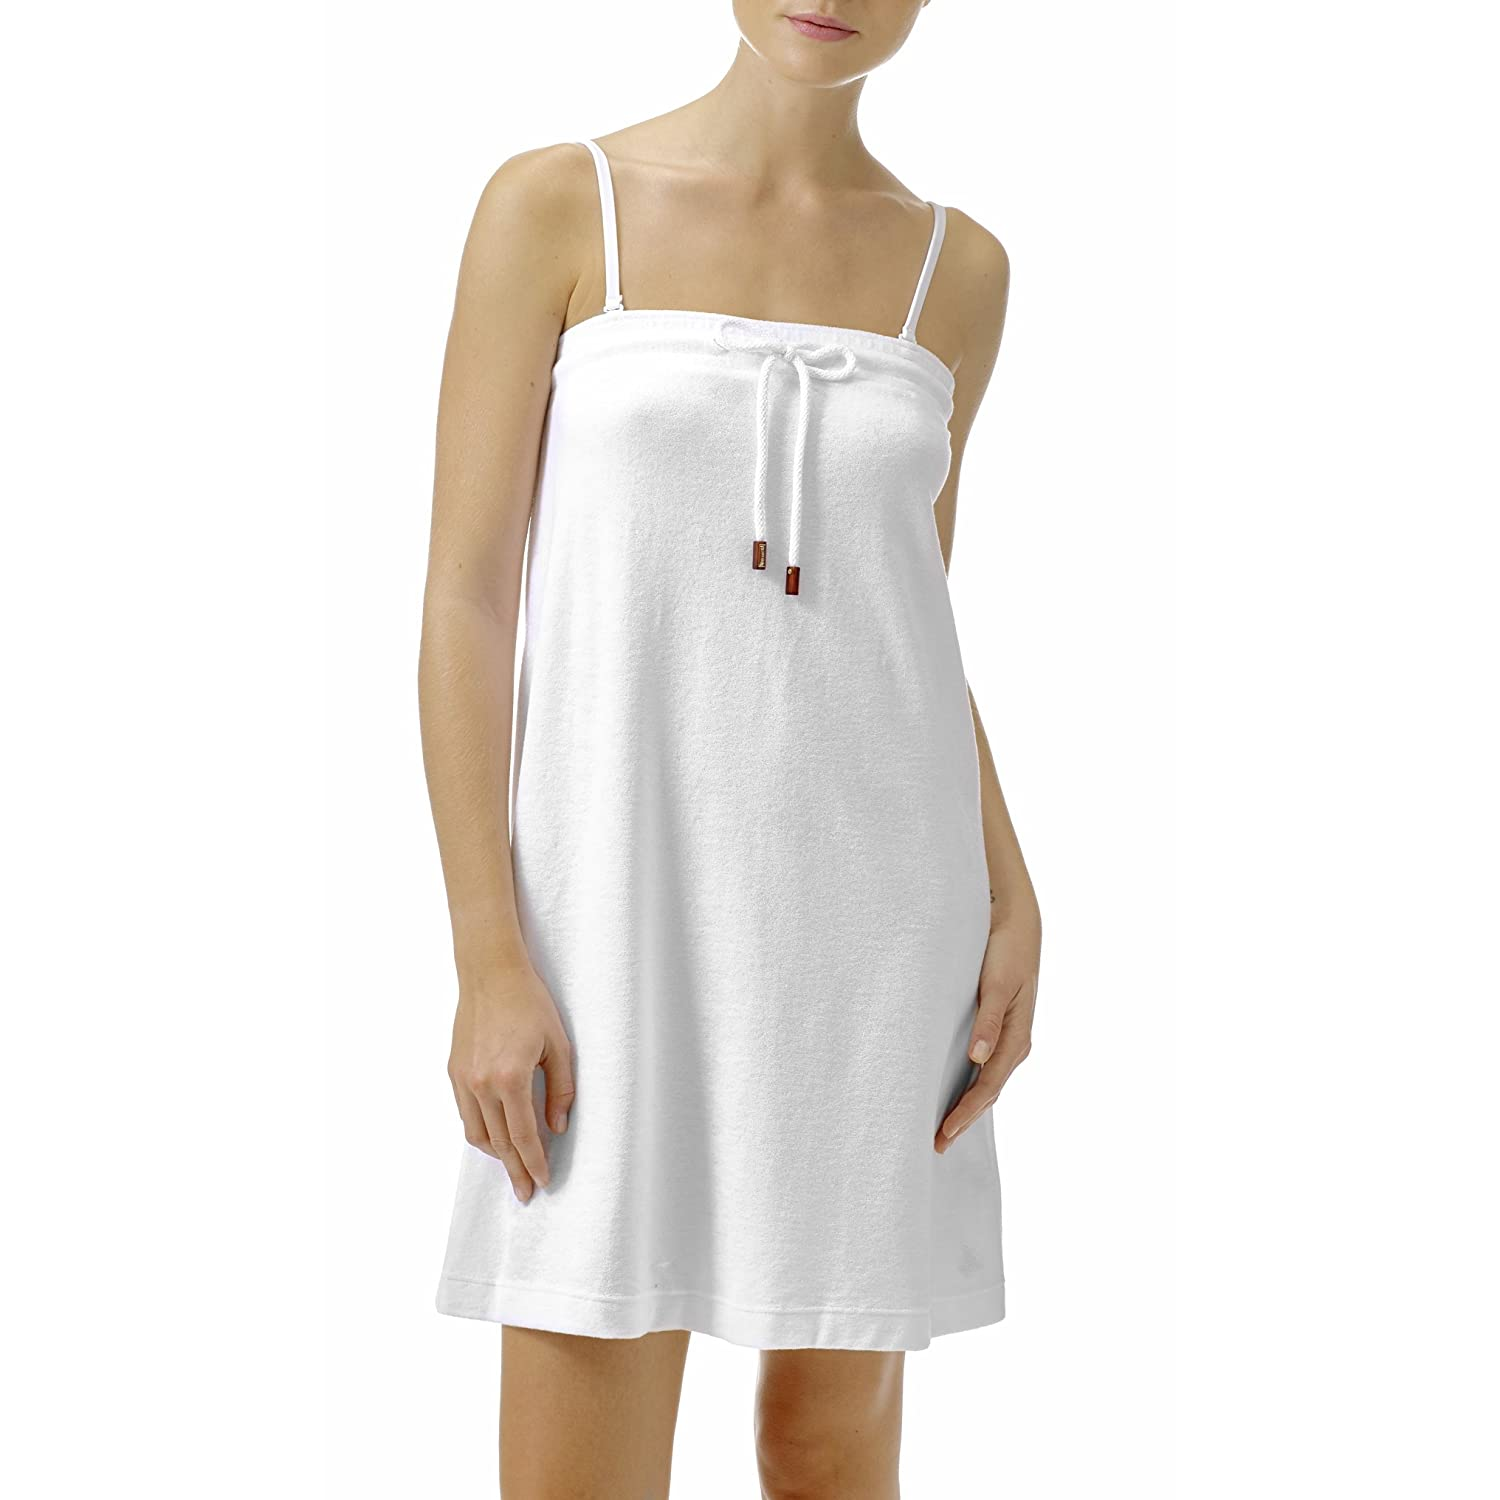 Vilebrequin Dress - Terry cloth knee strapless dress Women